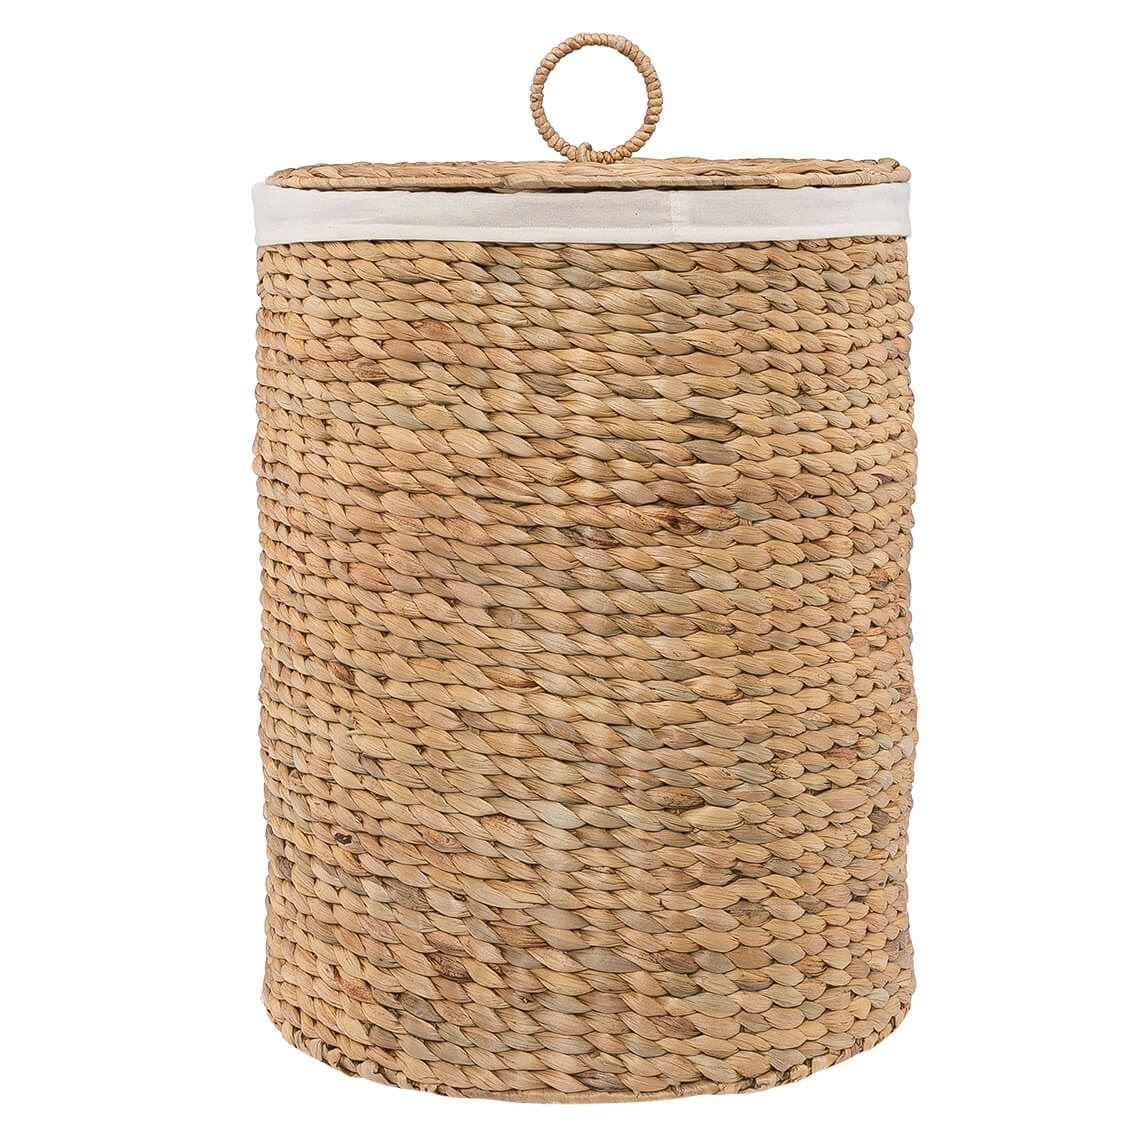 Namira Laundry Hamper Natural Laundry Hamper Hamper Laundry